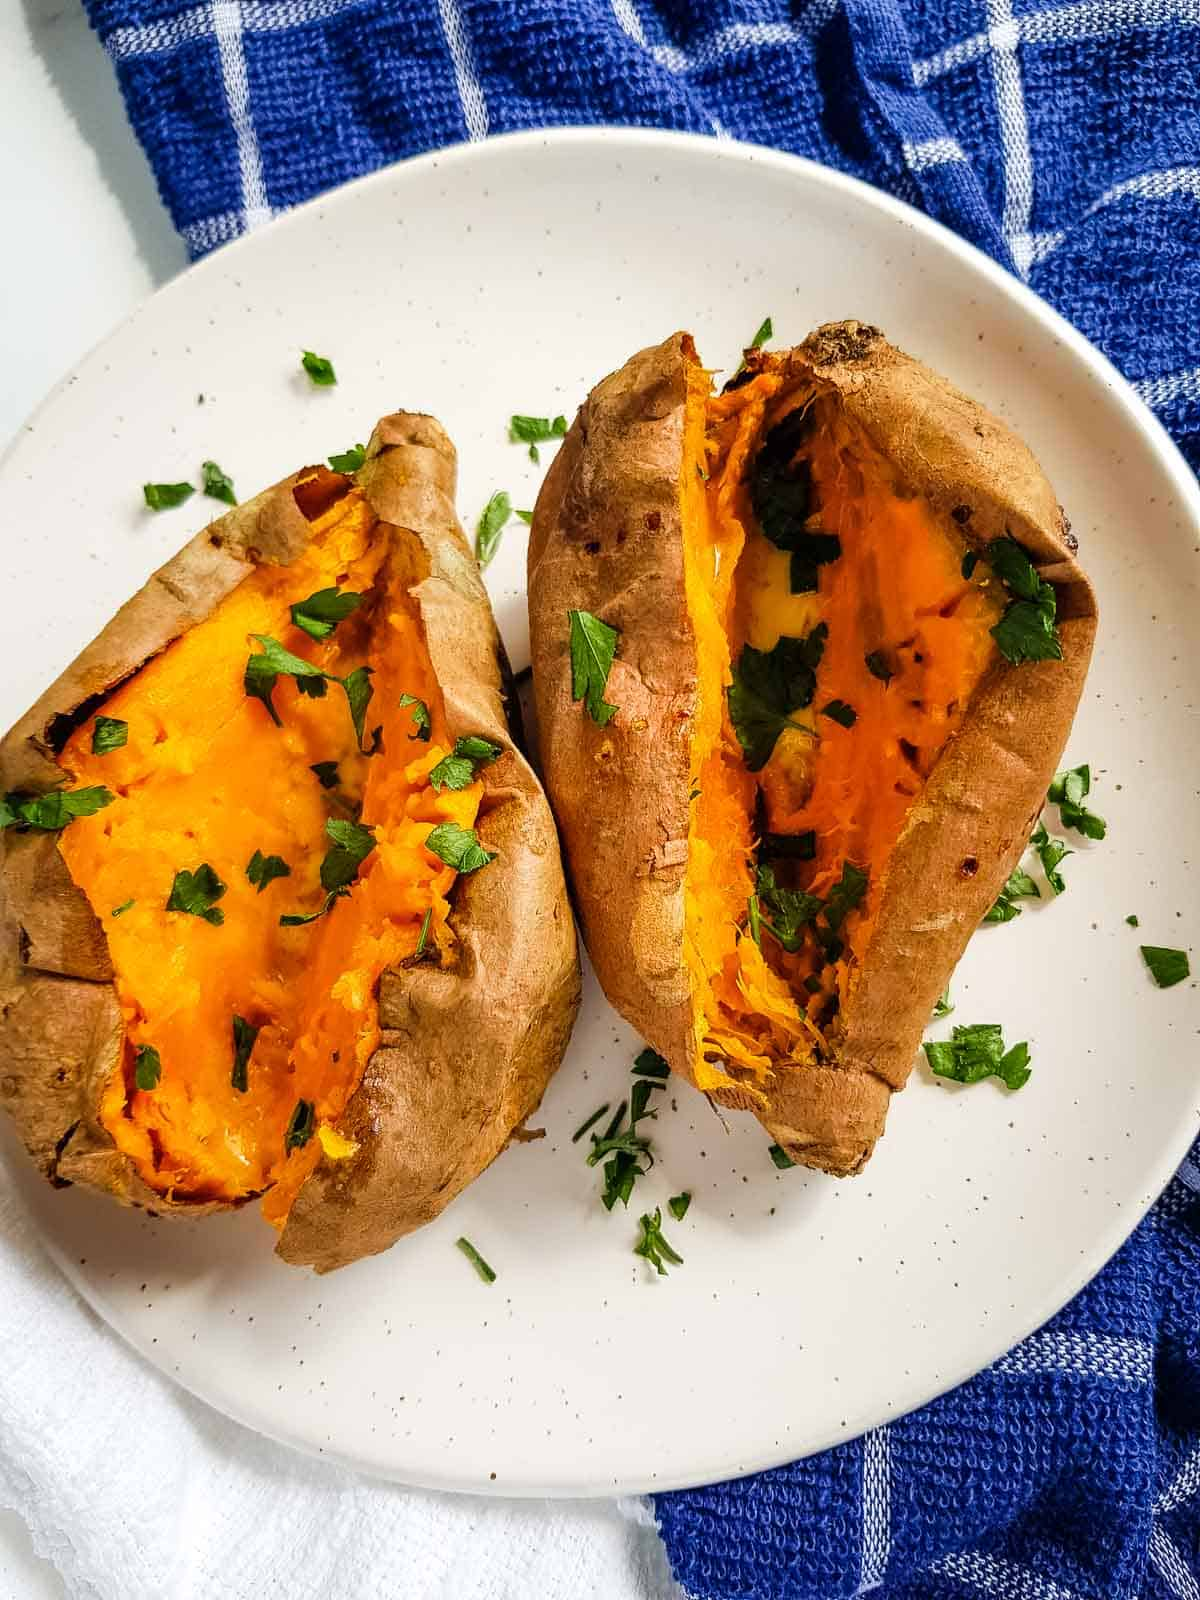 Air fried sweet potatoes on a plate.